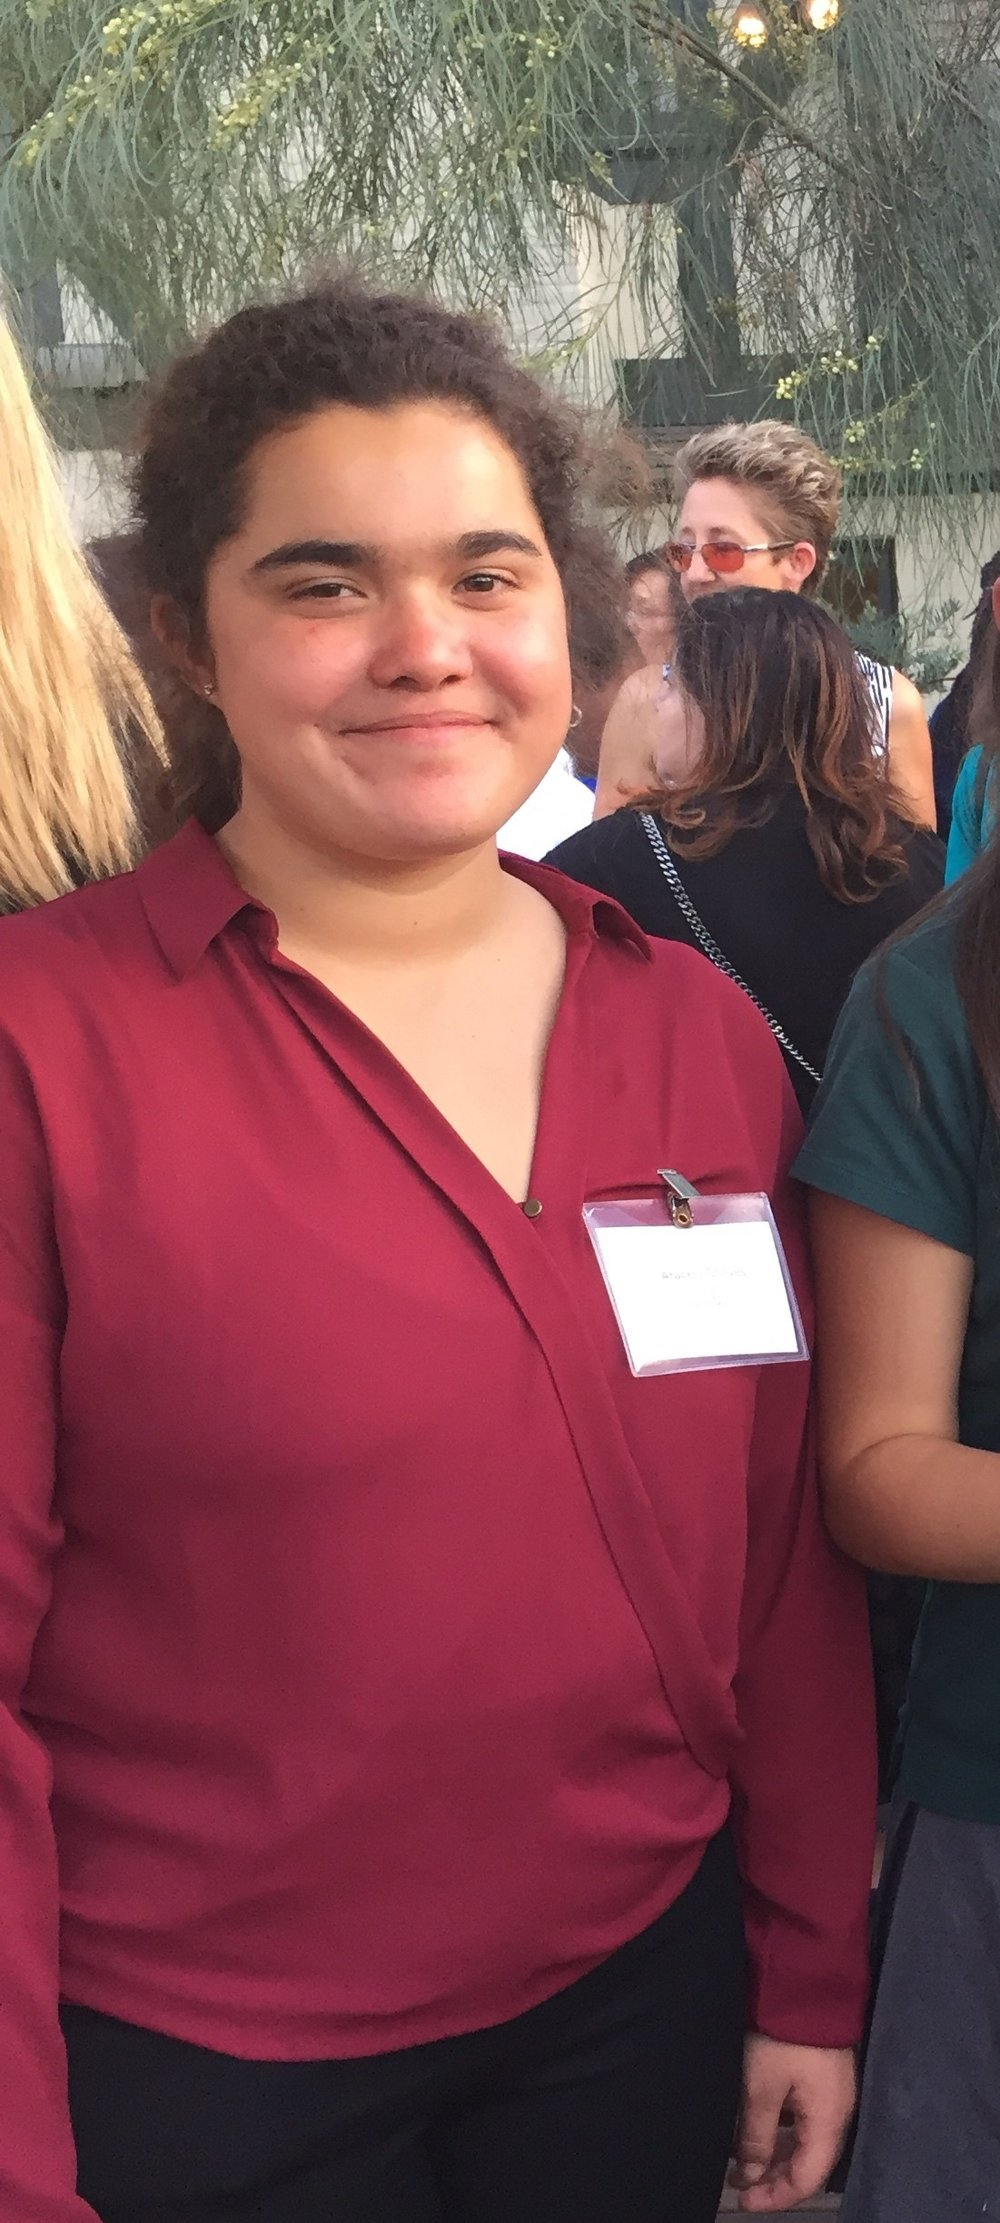 Communications I'm Aracely Chavez, a senior at SFHS' Magnet Program. I am in charge of our team's blog and a part of the Solar Panel team. I plan on attending a four-year university, but I am still undecided on what I want to study.